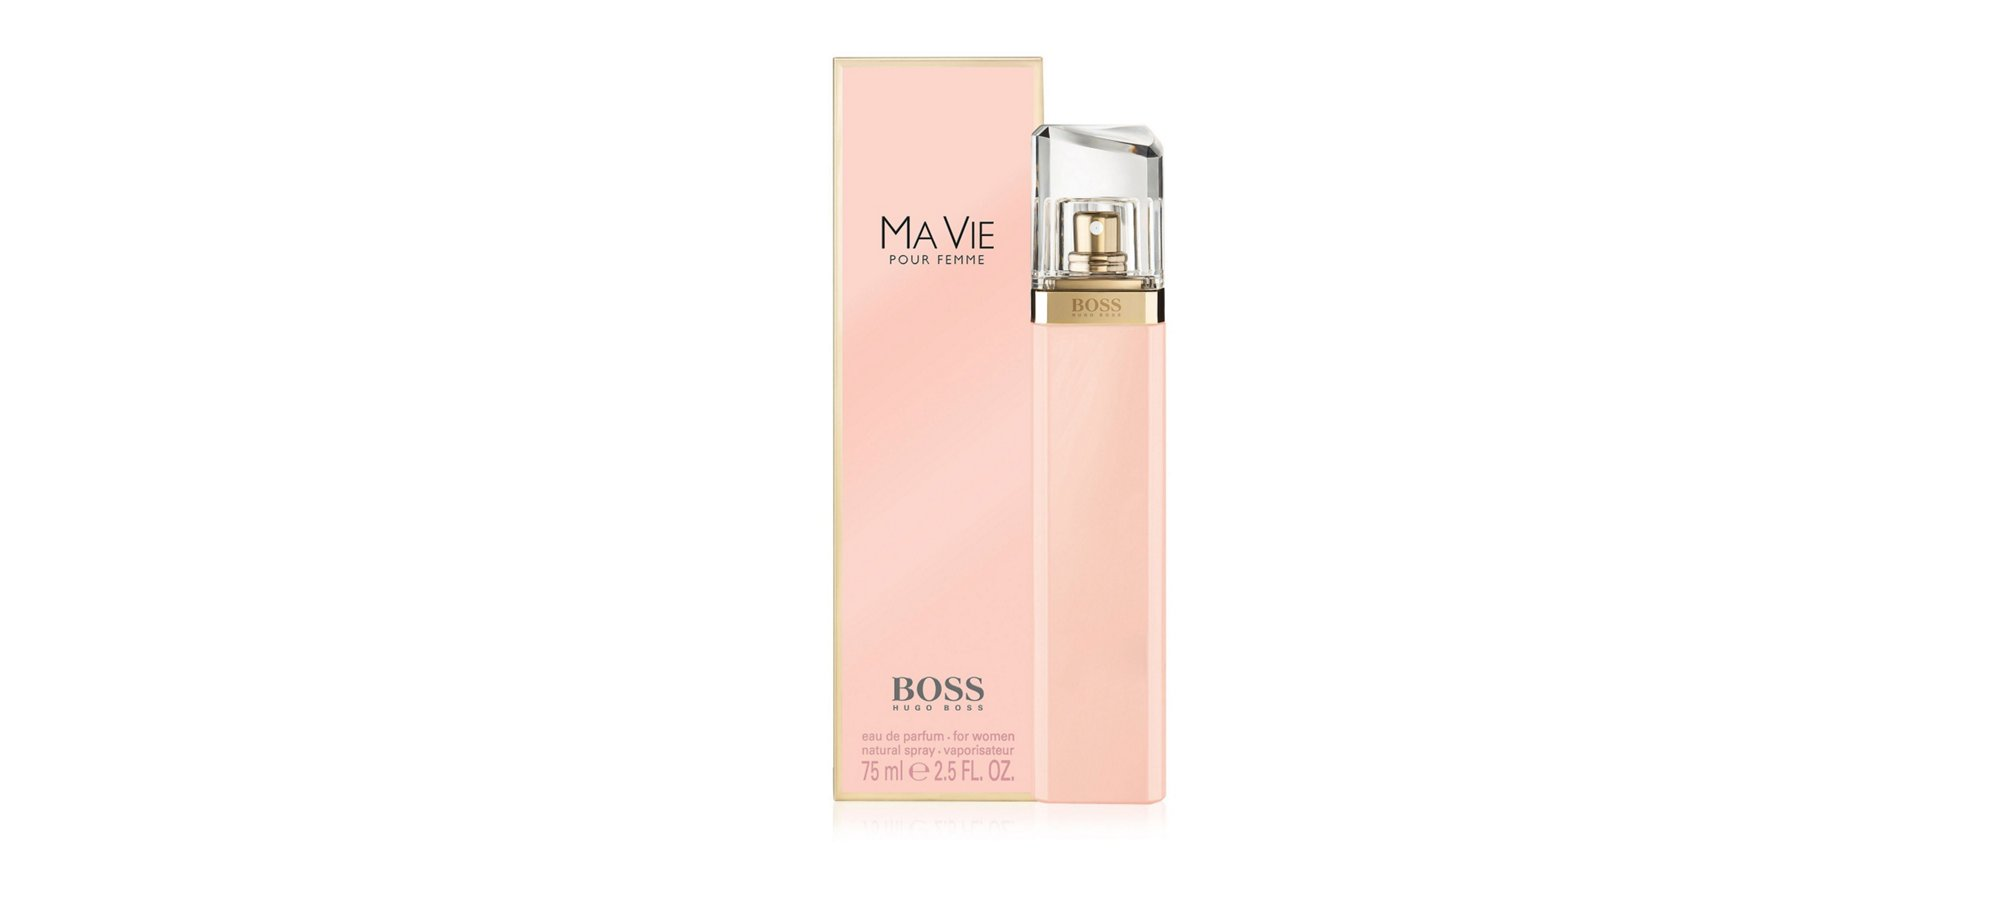 Shop the fragrance by BOSS